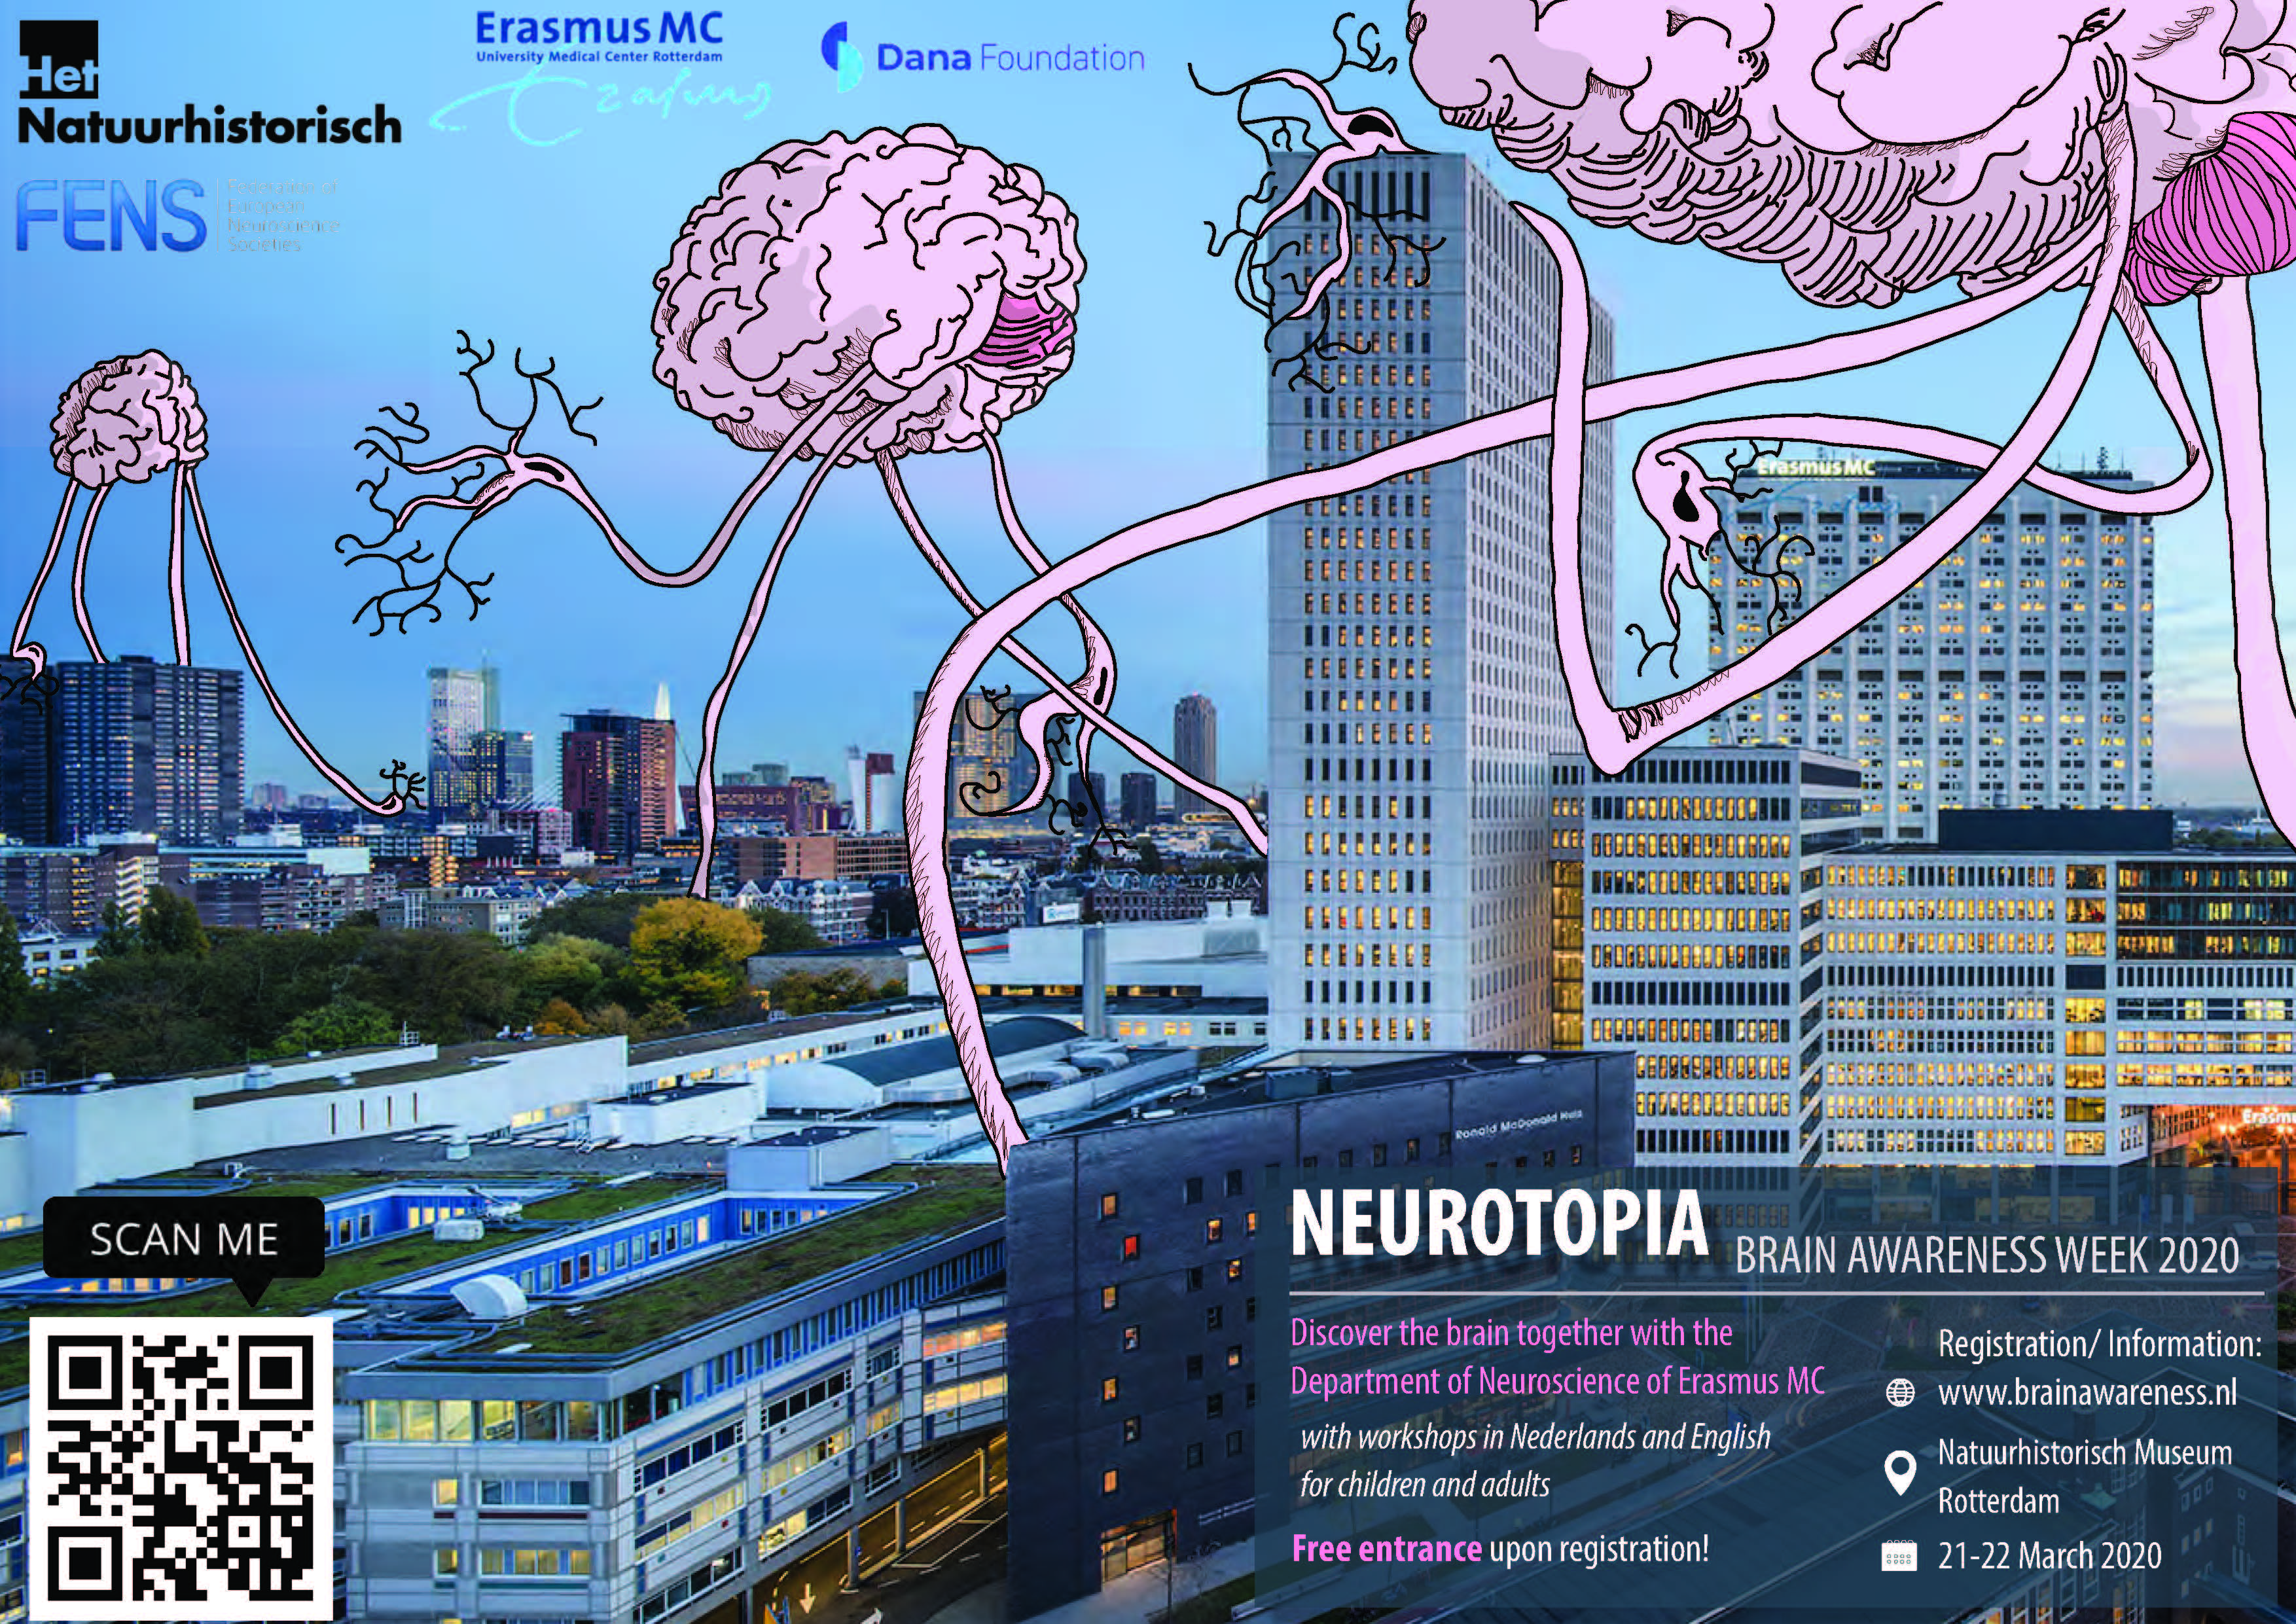 CANCELLED DUE TO COVID-19 Neurotopia - Brains take over the city - Brain Awareness Week 2020